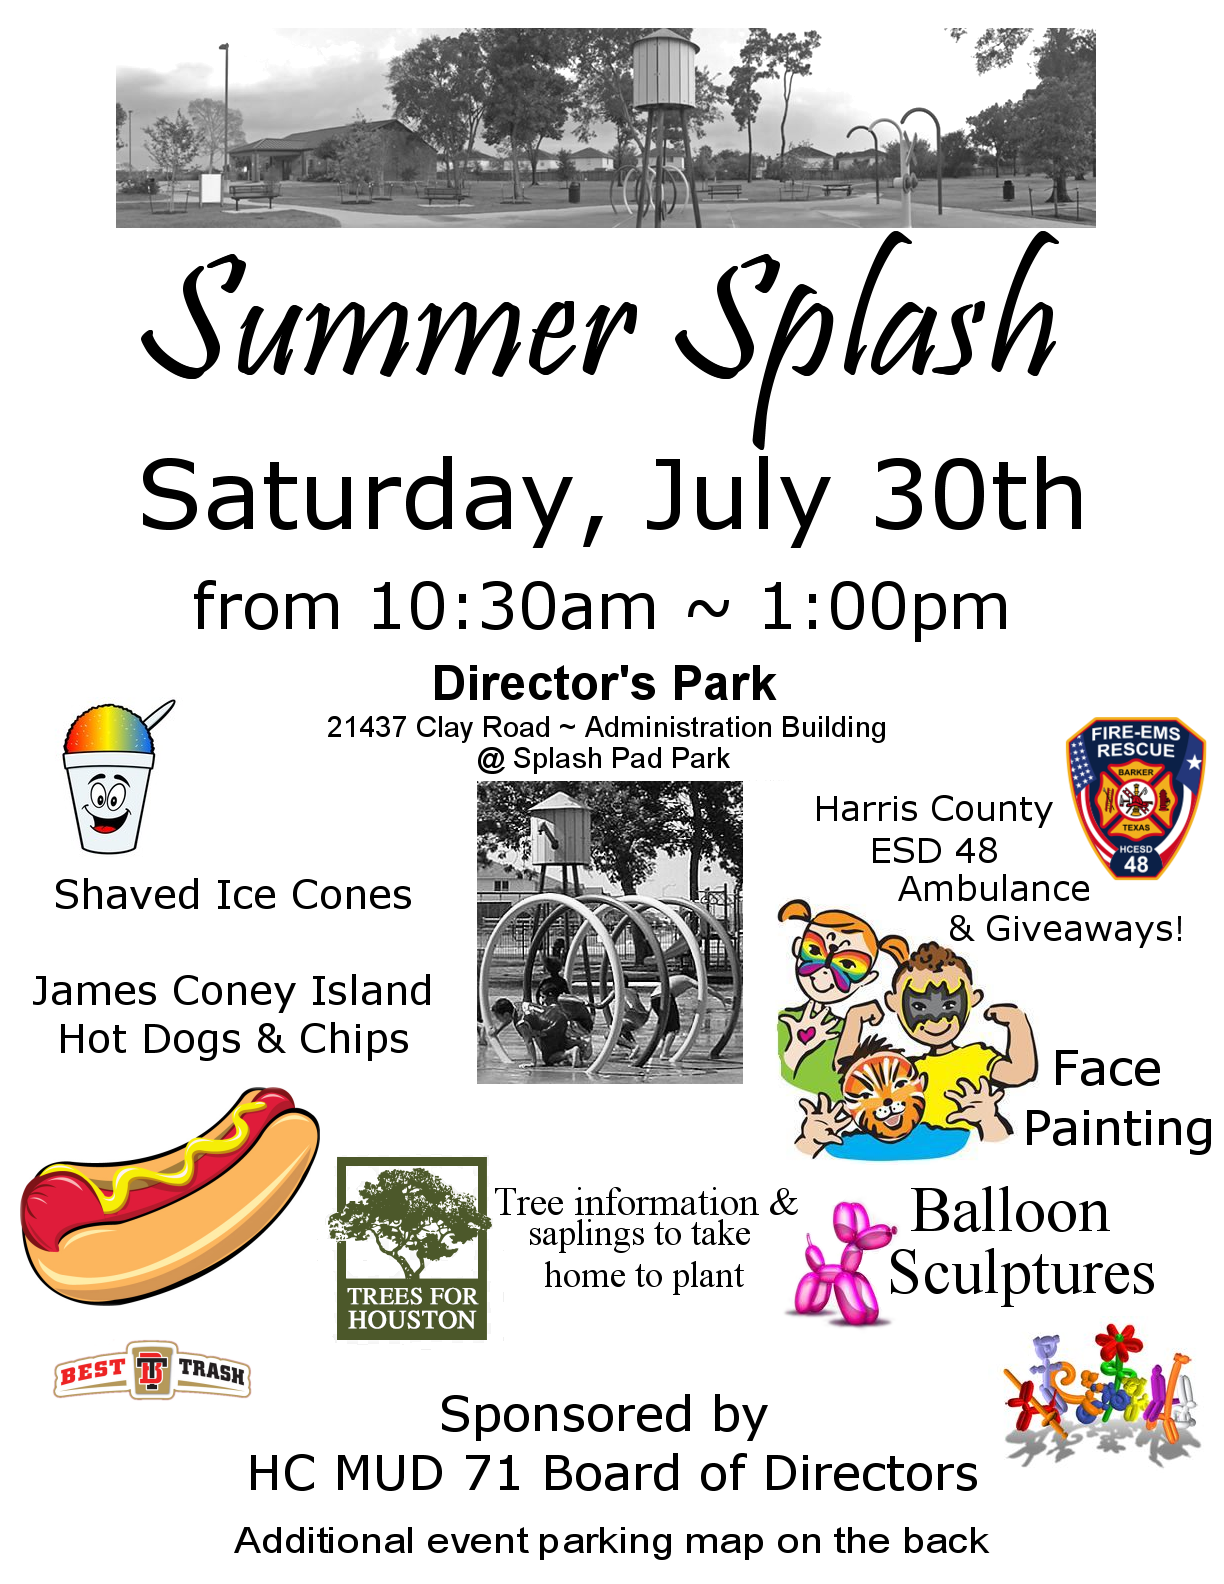 Summer Splash - Saturday, July 30th